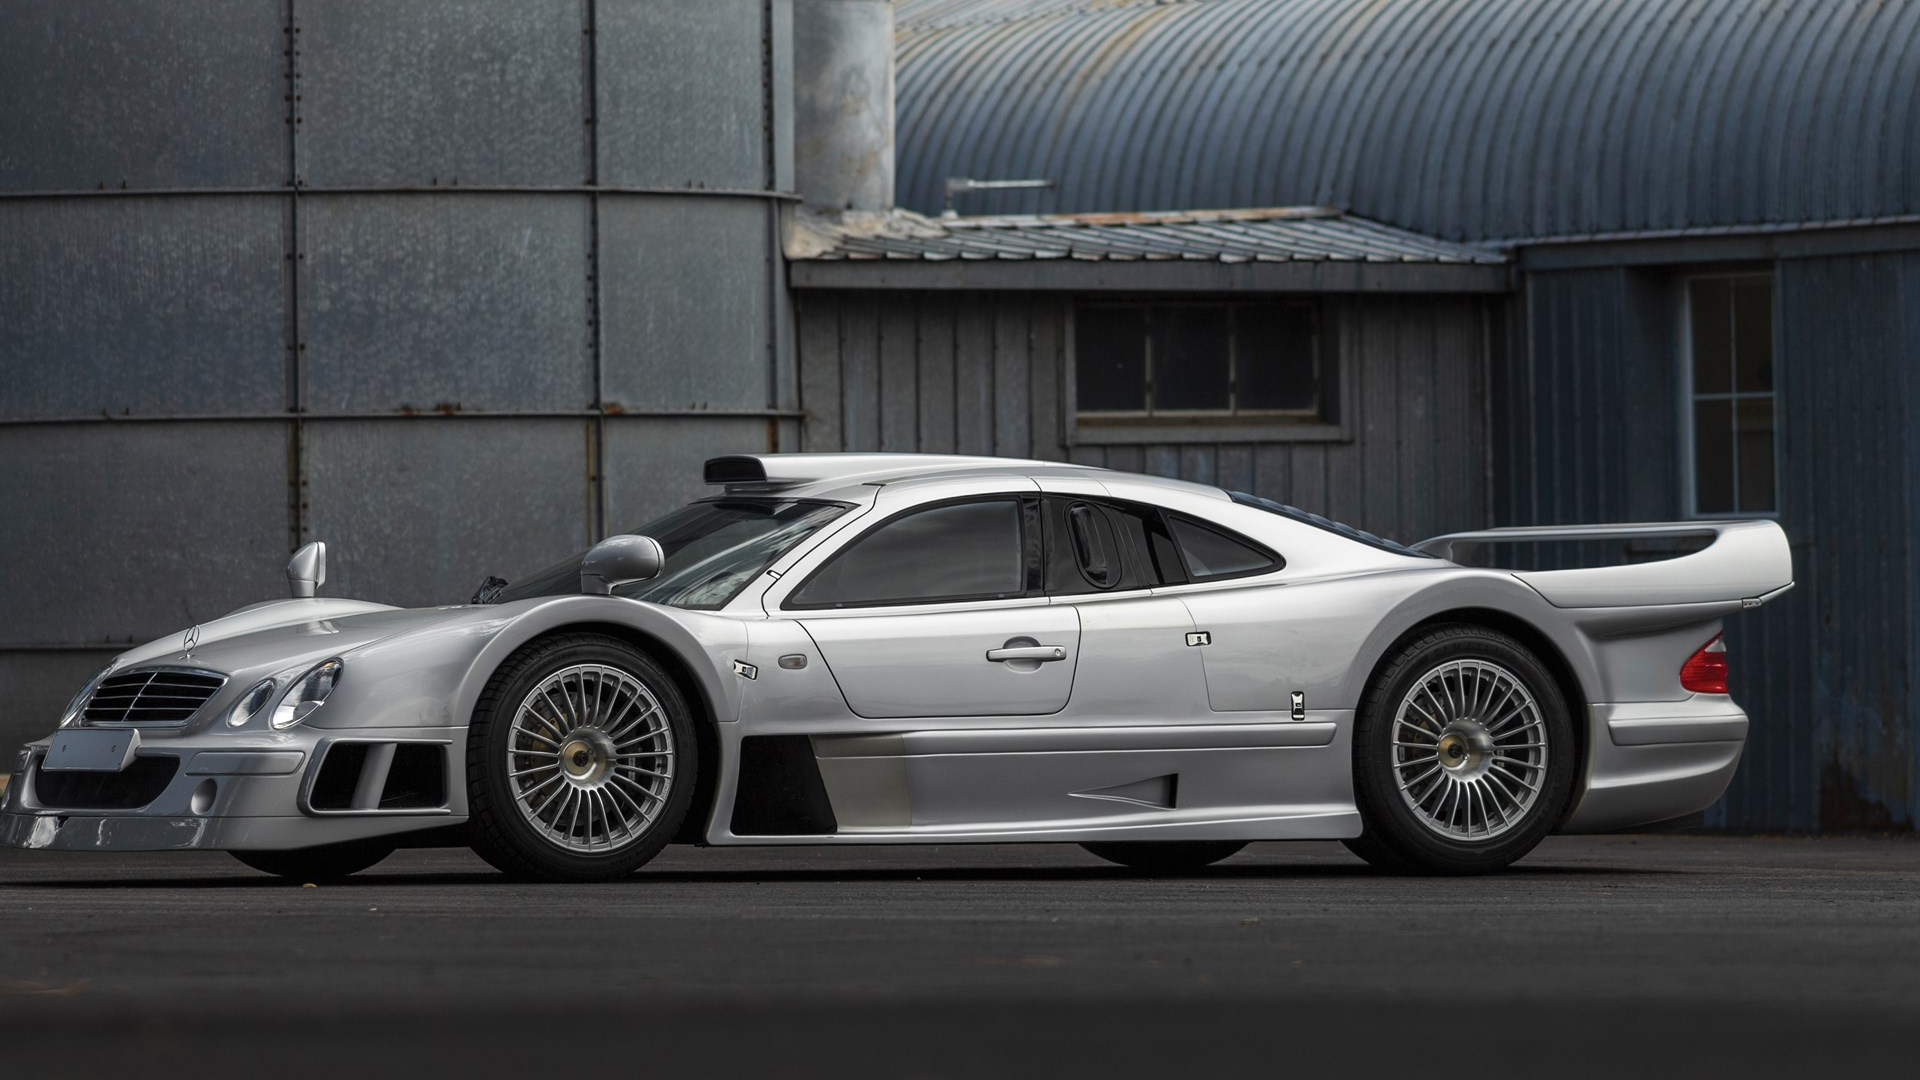 Homologation Racing Specials Could be Making a Comeback ...